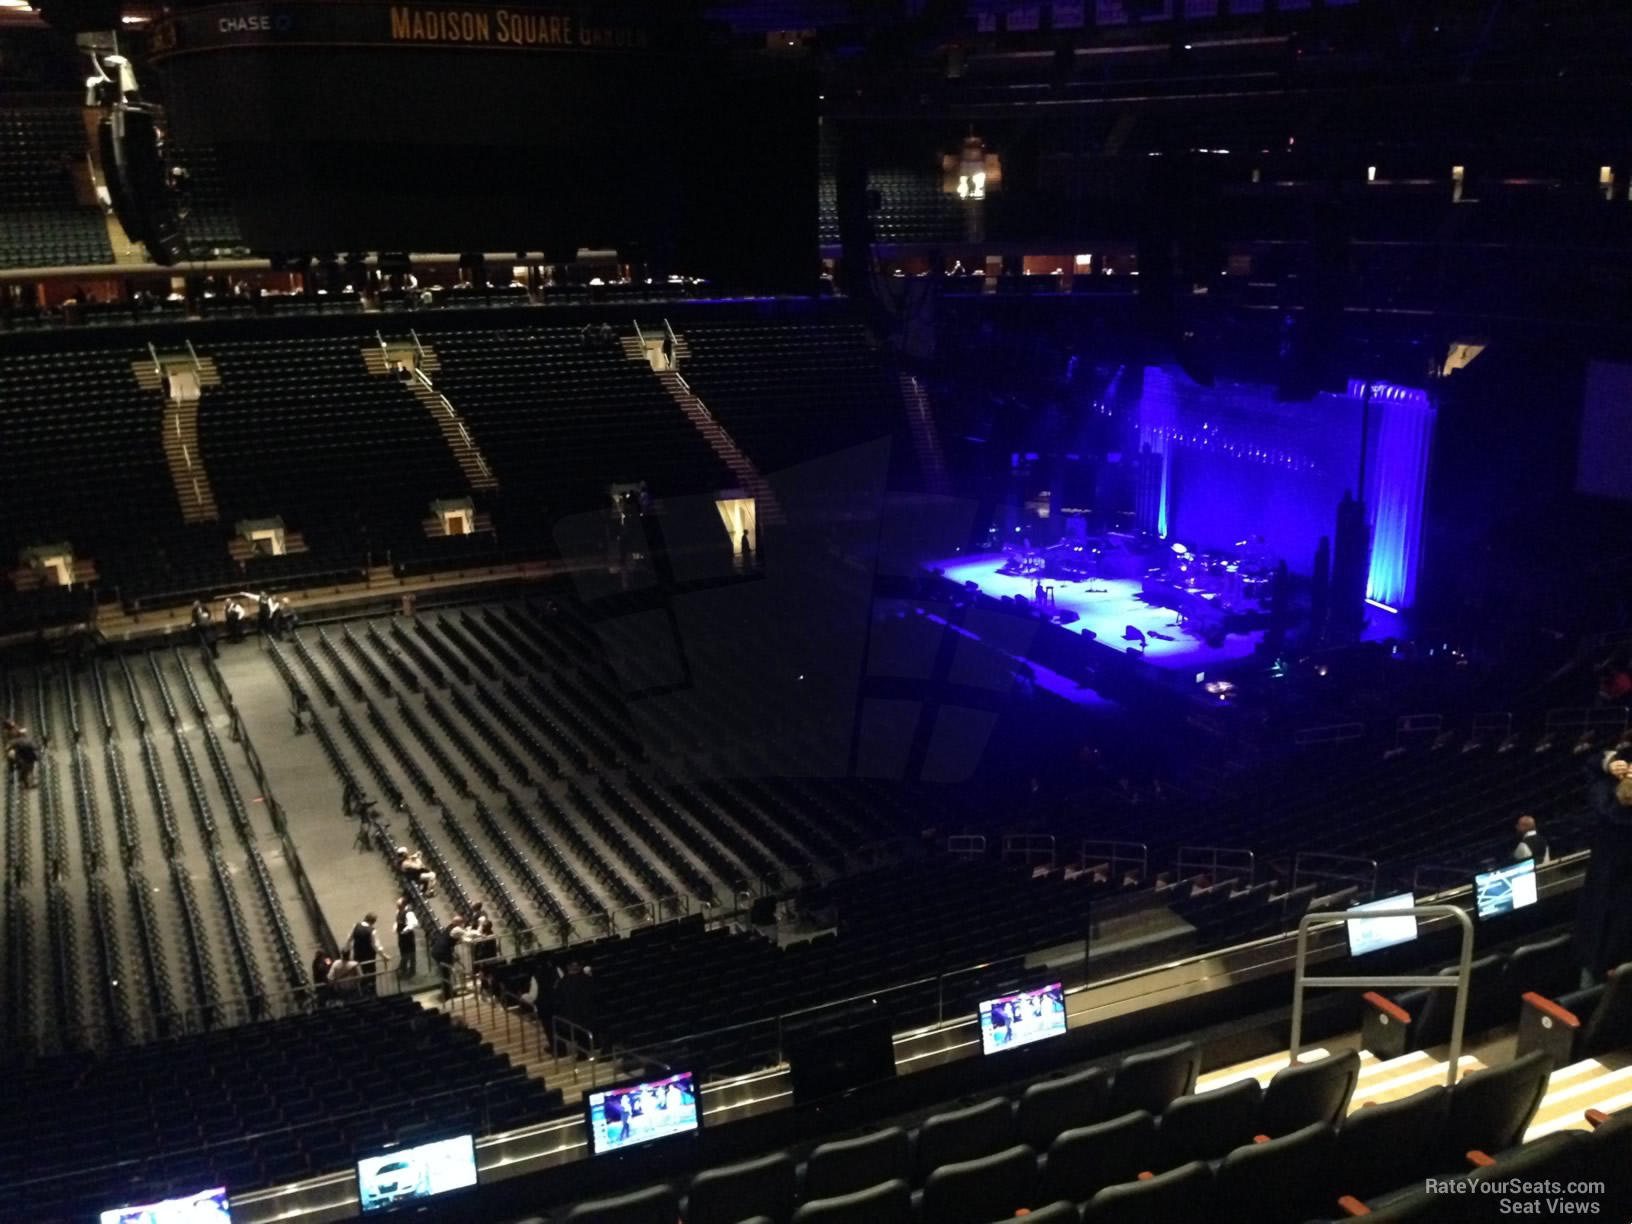 Madison Square Garden Section 210 Concert Seating